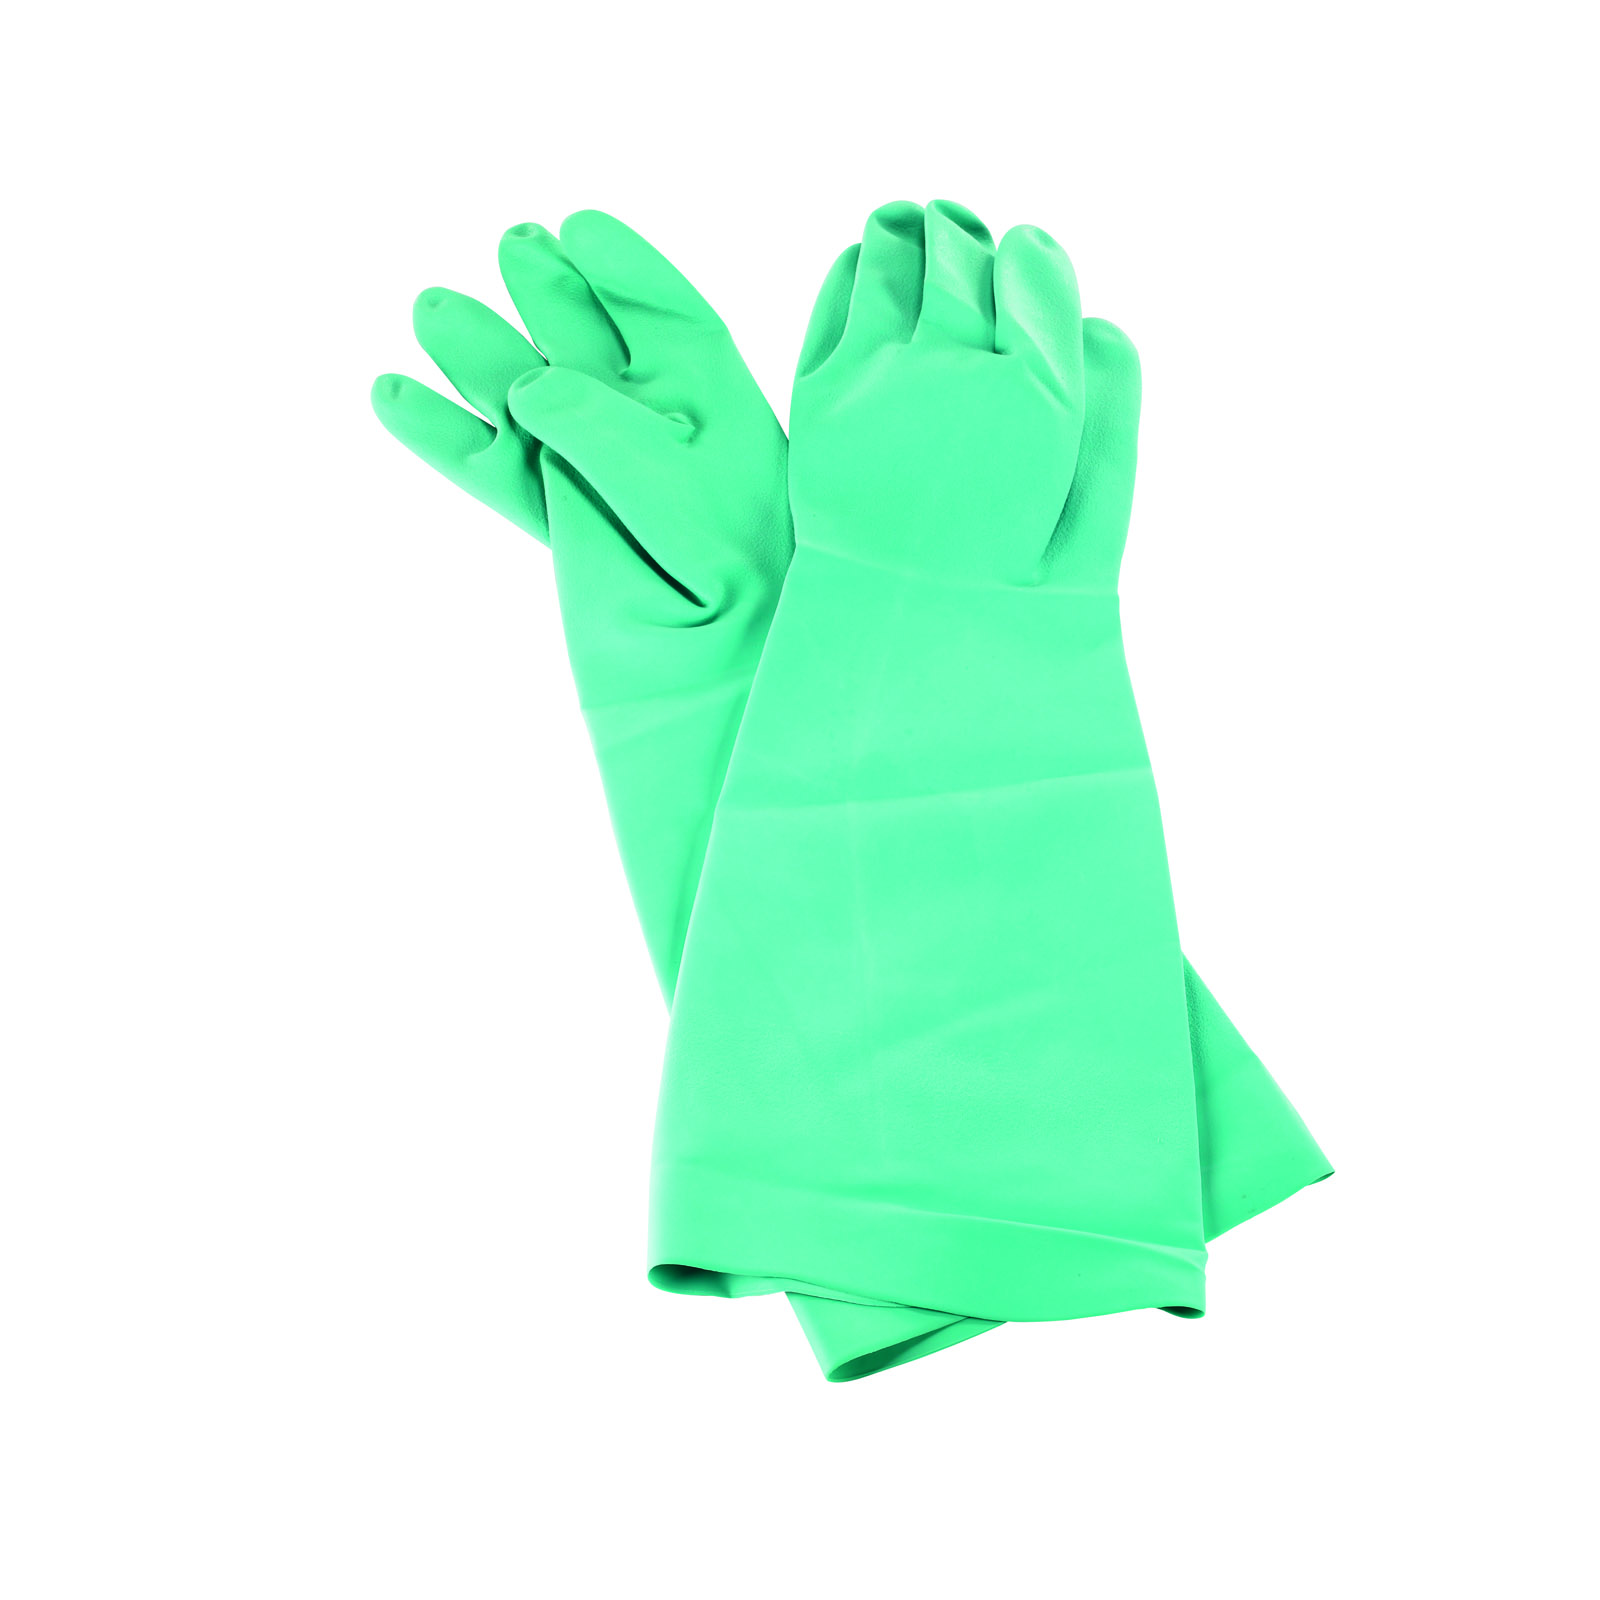 San Jamar 19NU-S gloves, dishwashing / cleaning